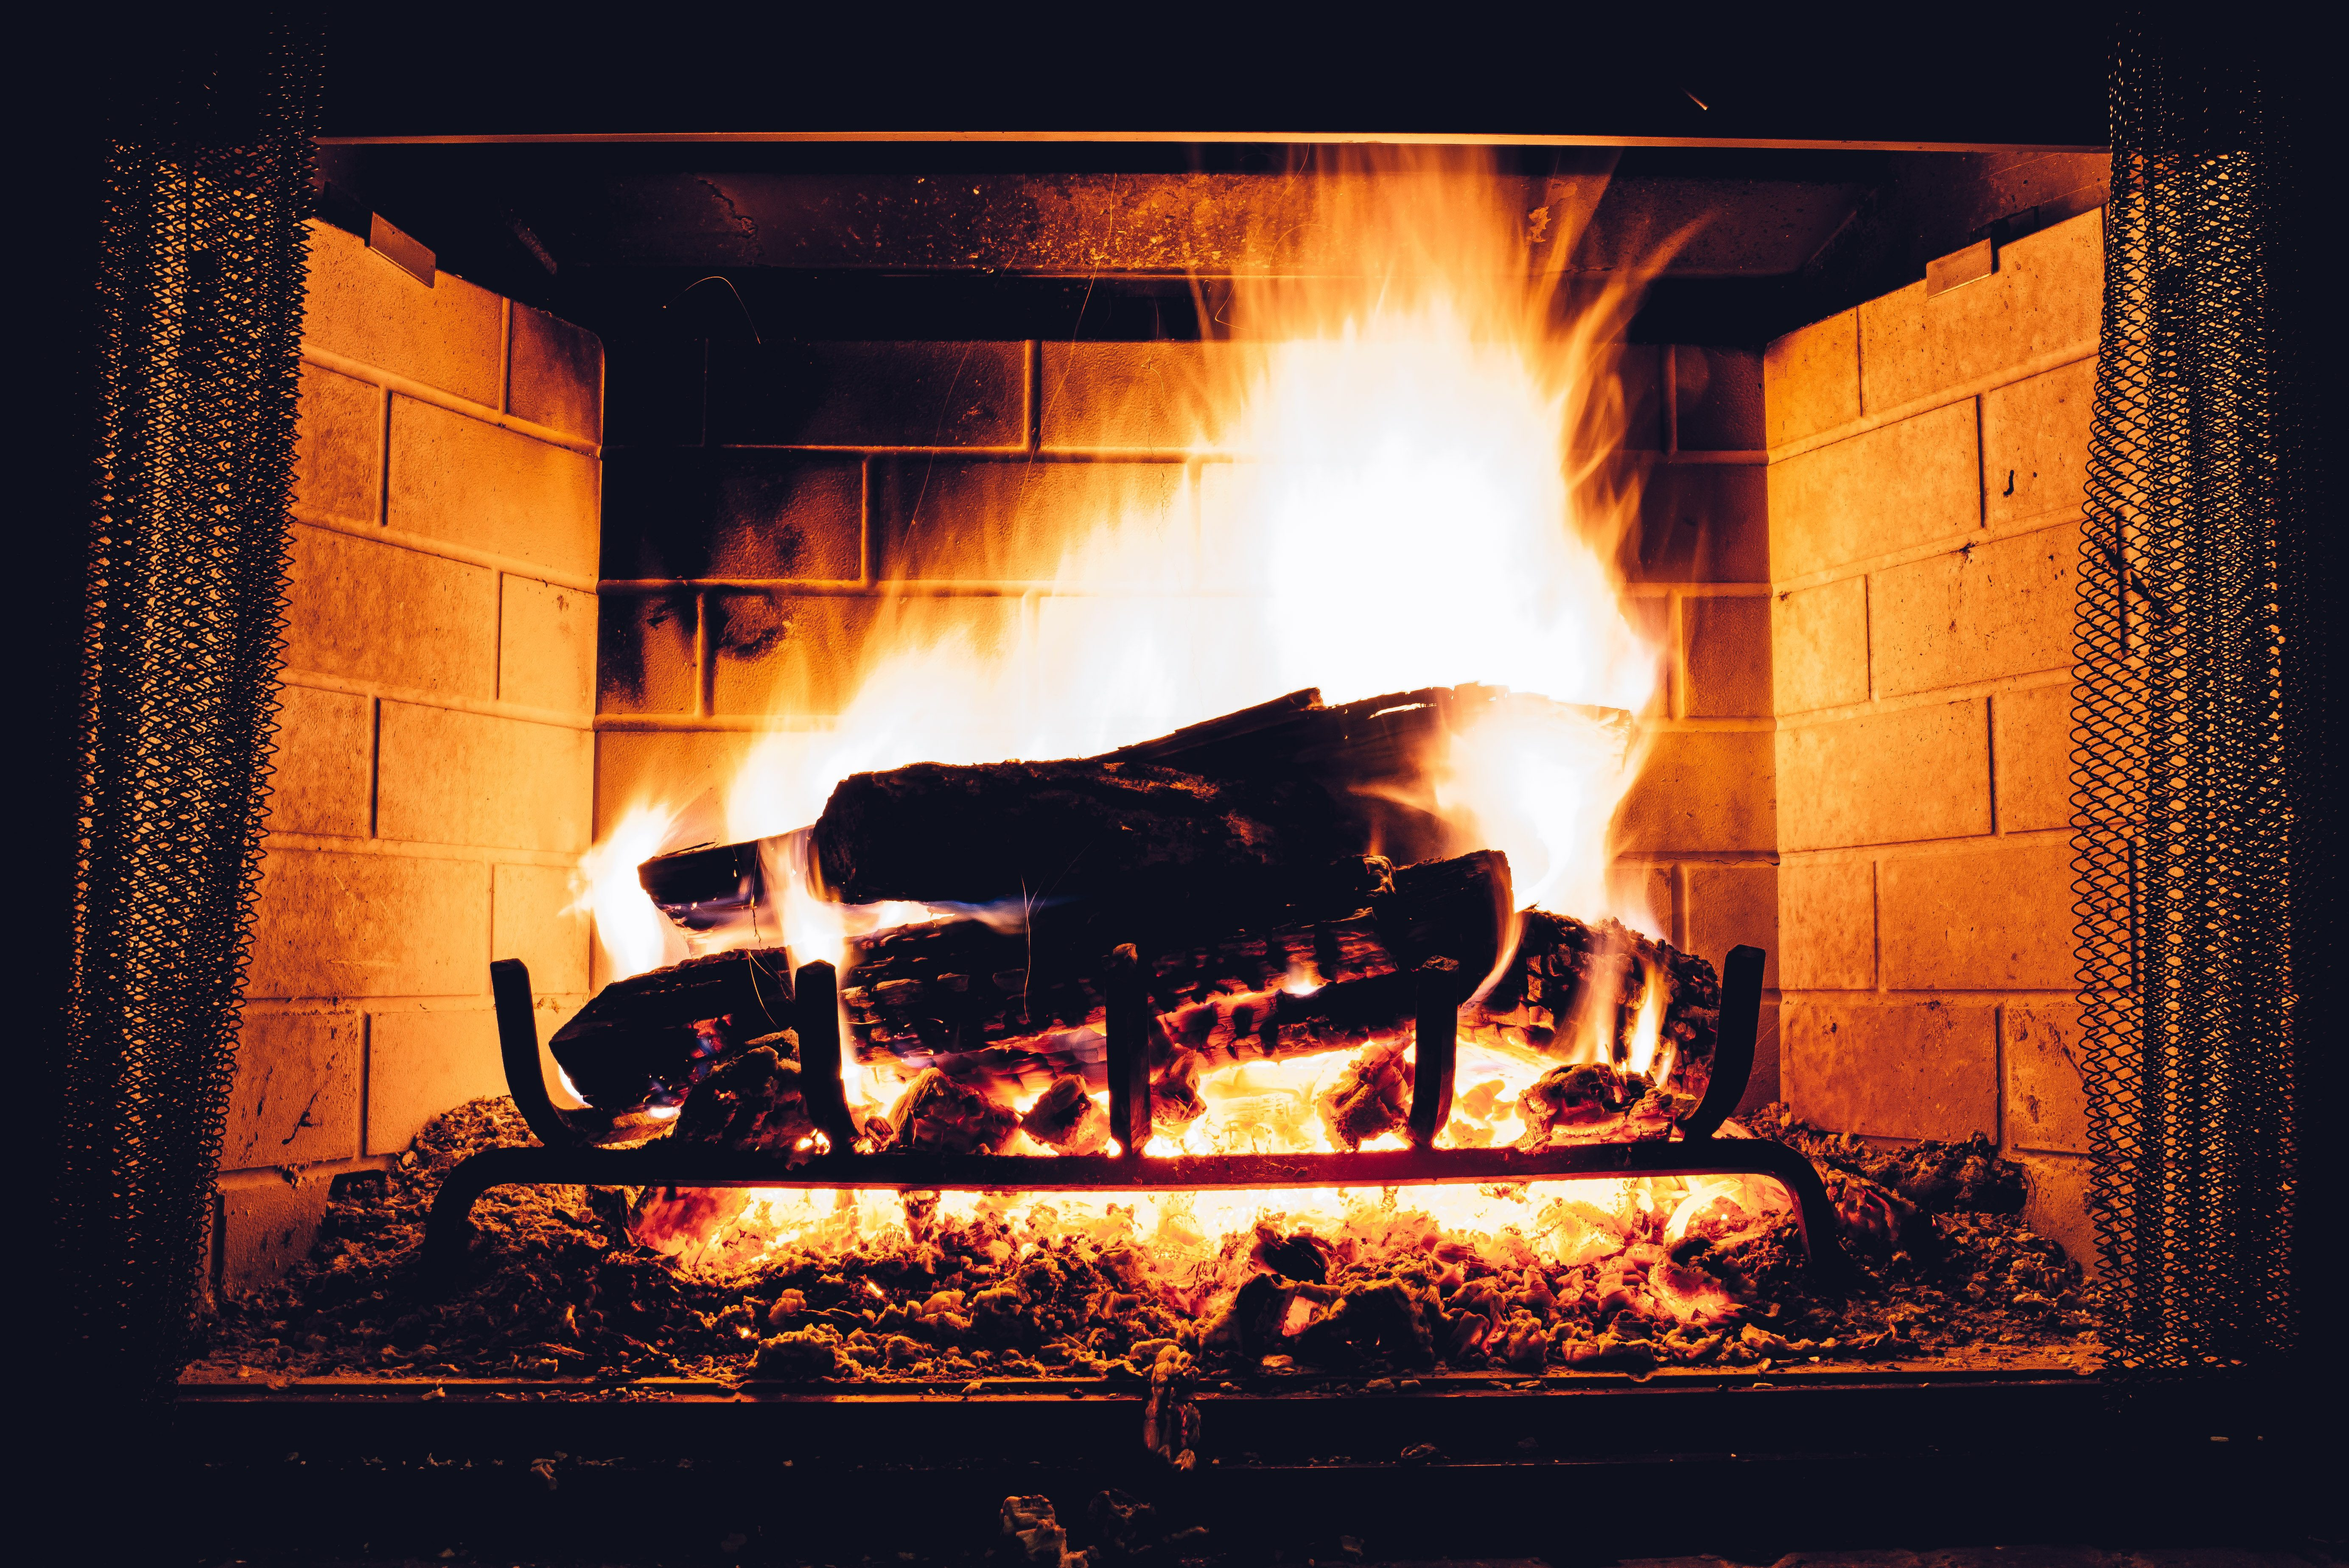 Retailer of Fireplaces & Accessories